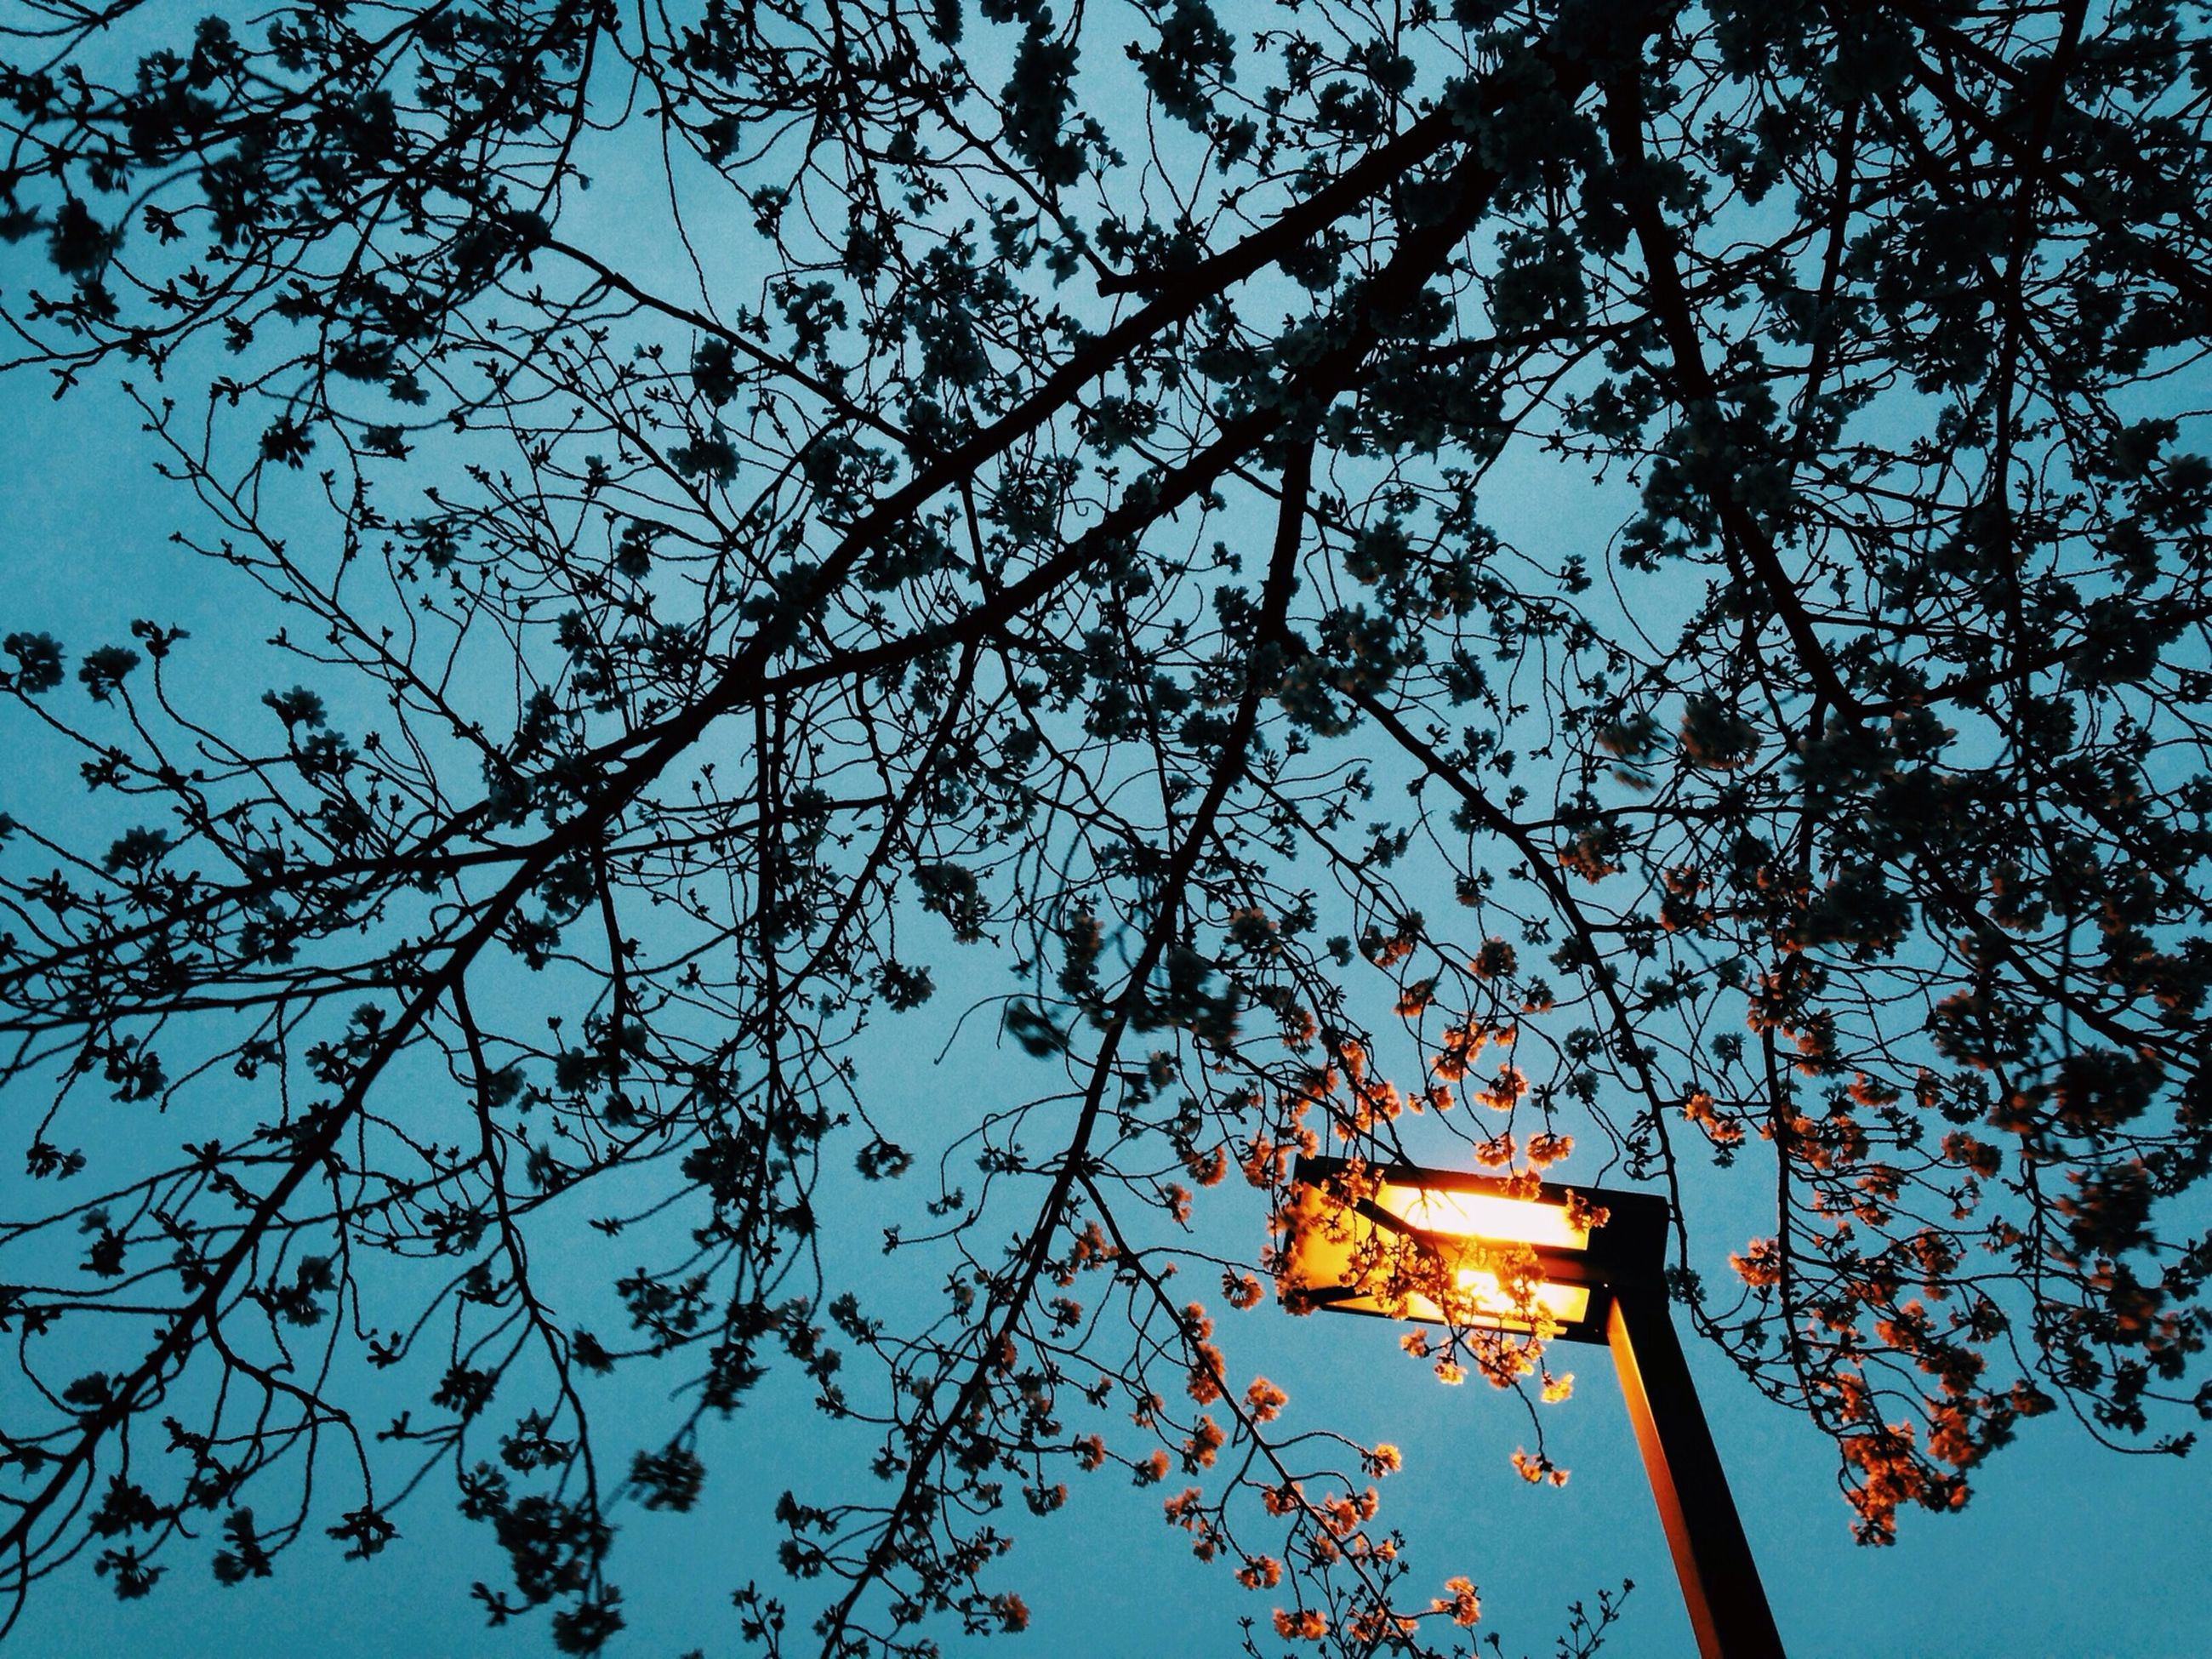 low angle view, tree, built structure, architecture, sky, lighting equipment, clear sky, street light, branch, building exterior, illuminated, blue, silhouette, outdoors, dusk, no people, day, nature, electricity, sunlight